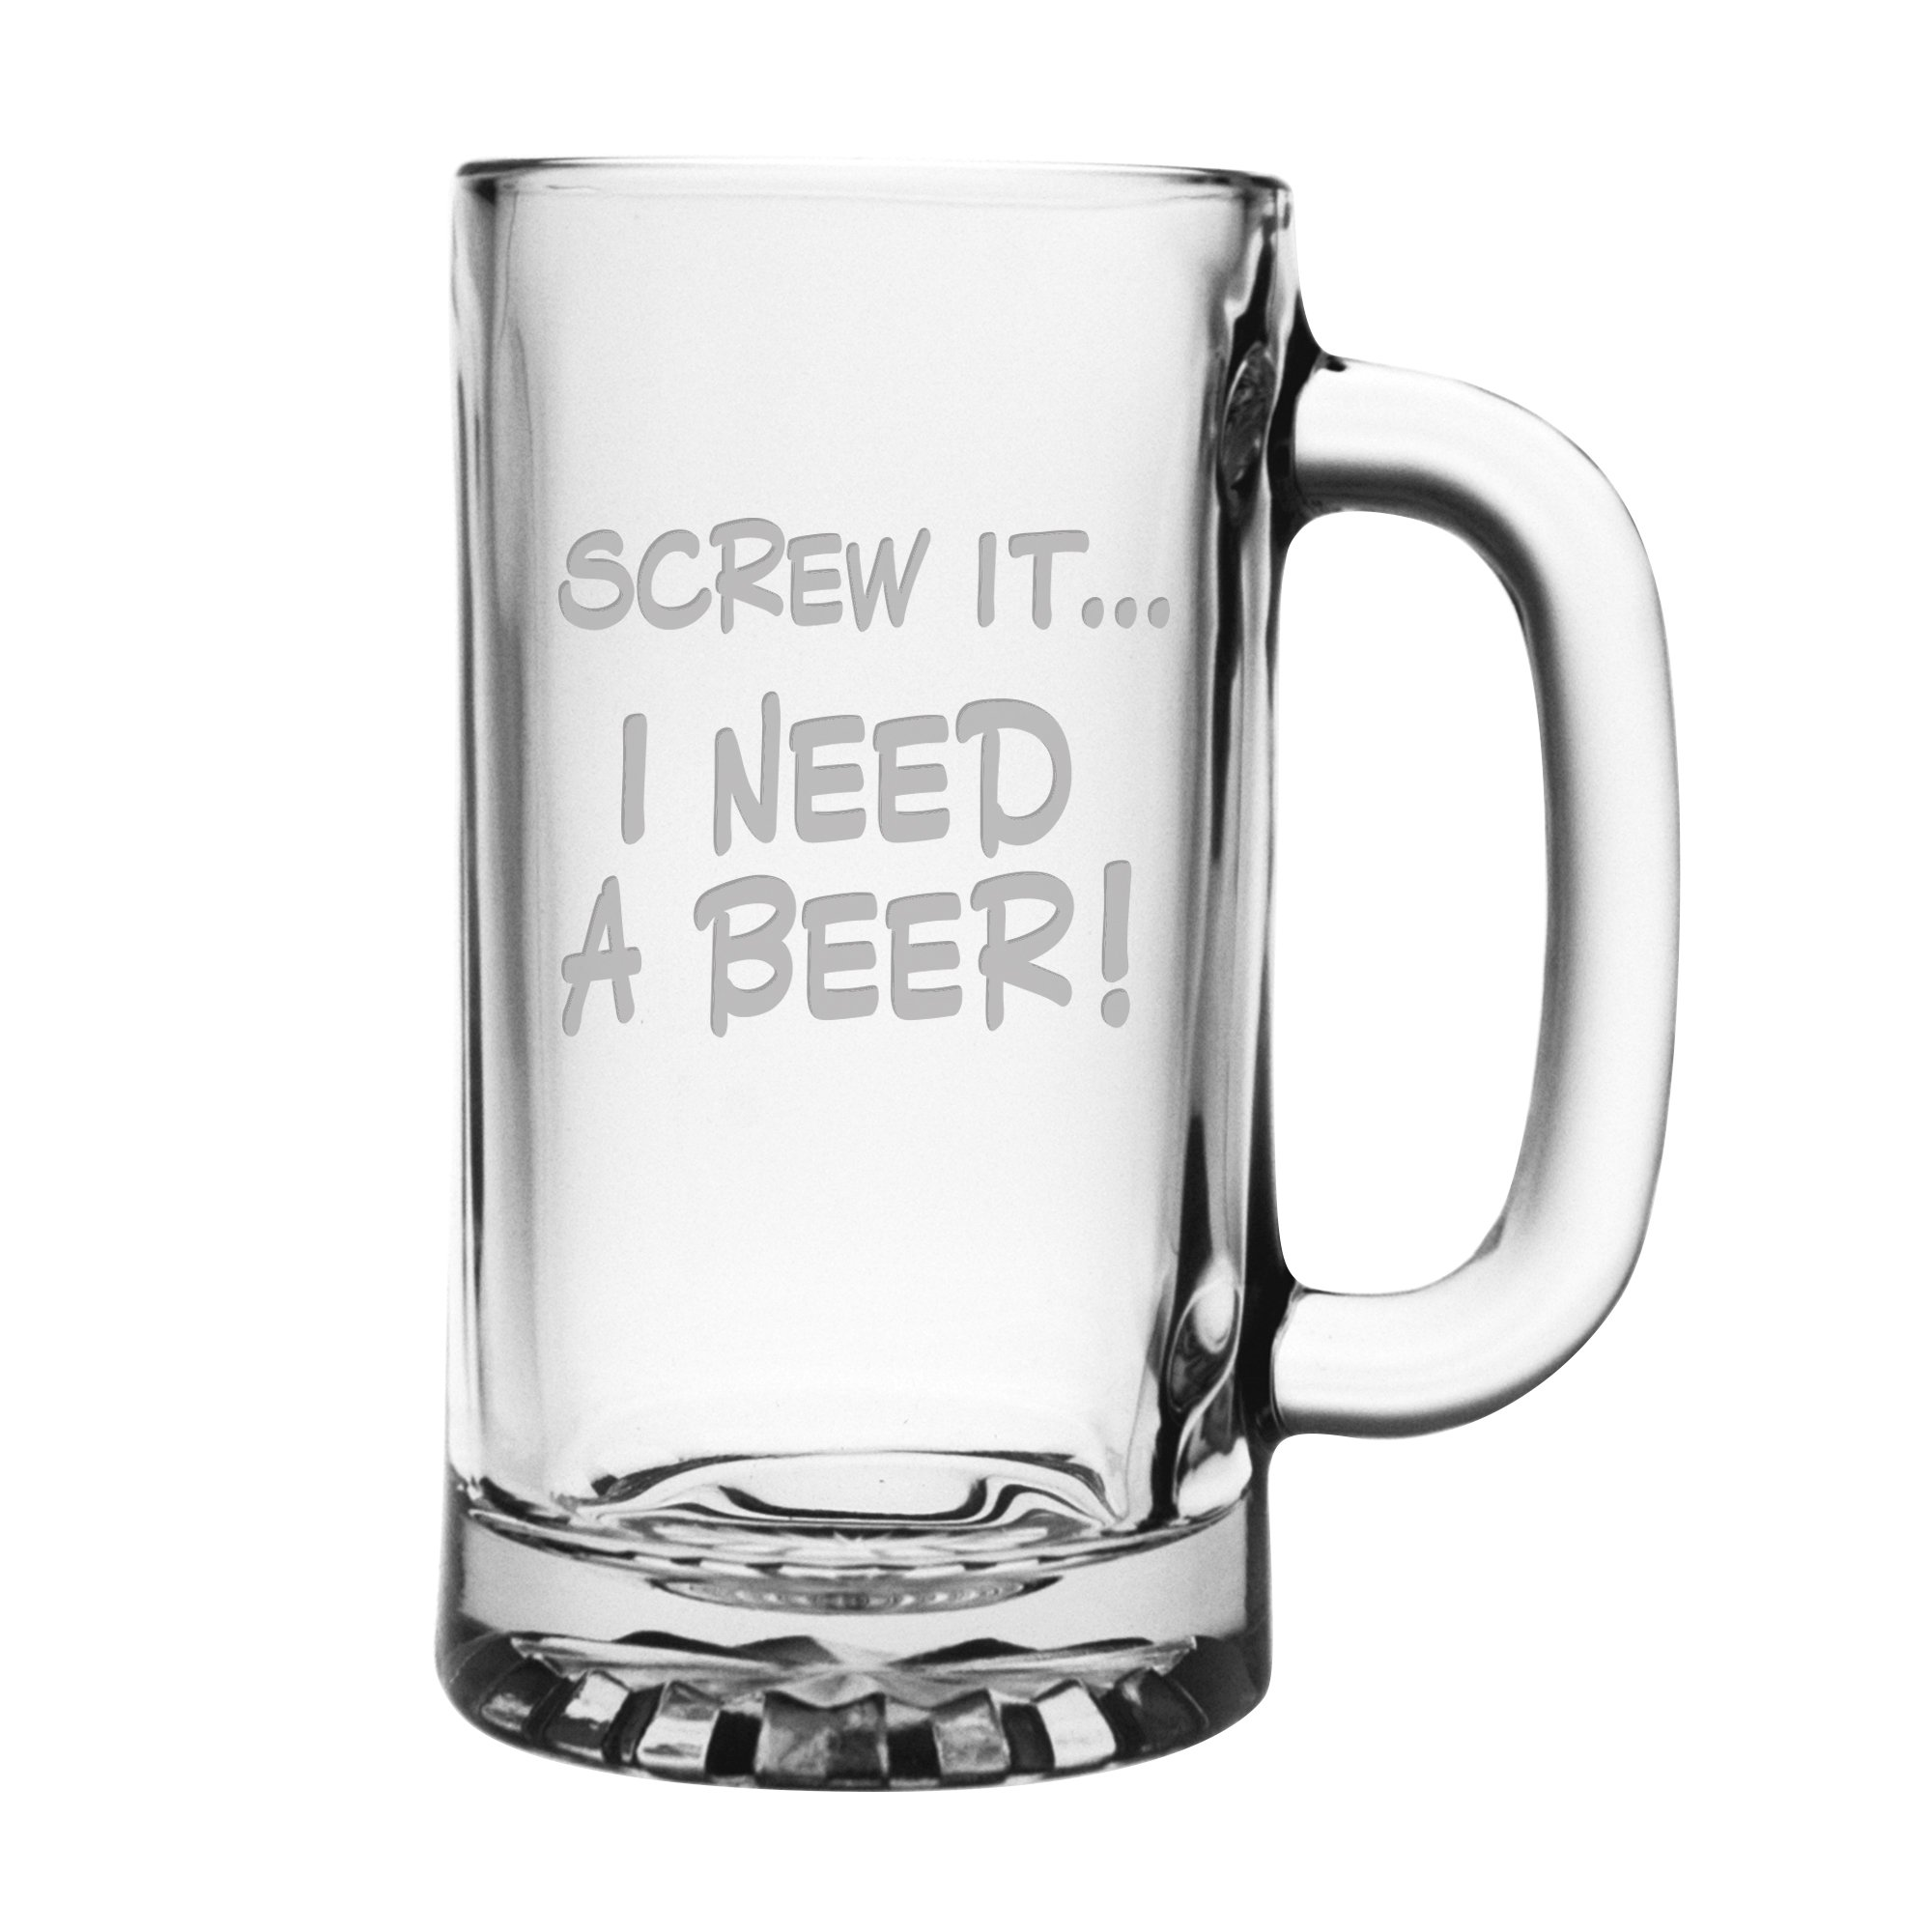 Fineware Screw It. I Need a Beer - Funny Glass Beer Mug - 16 ounce Etched Libbey Mug